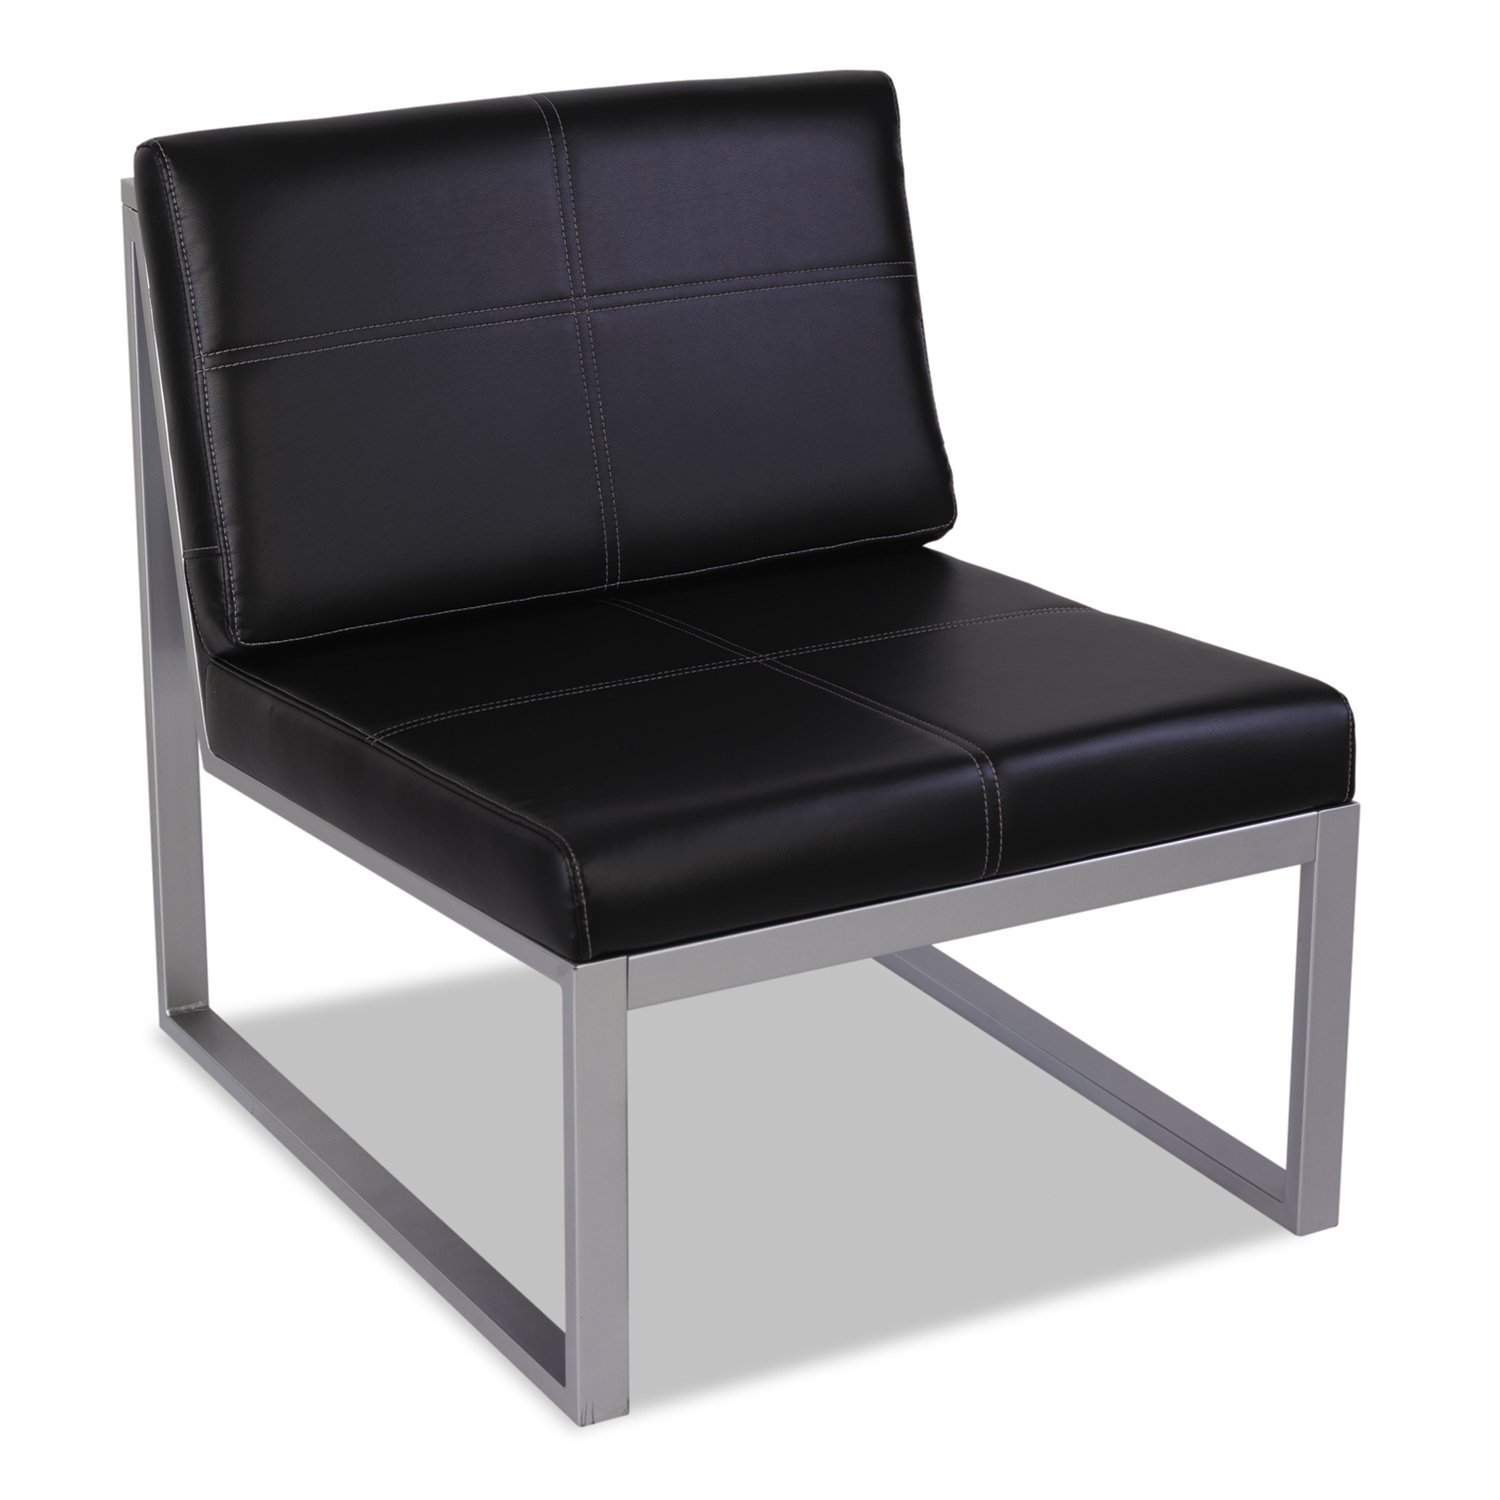 Connected waiting room chairs - Alera